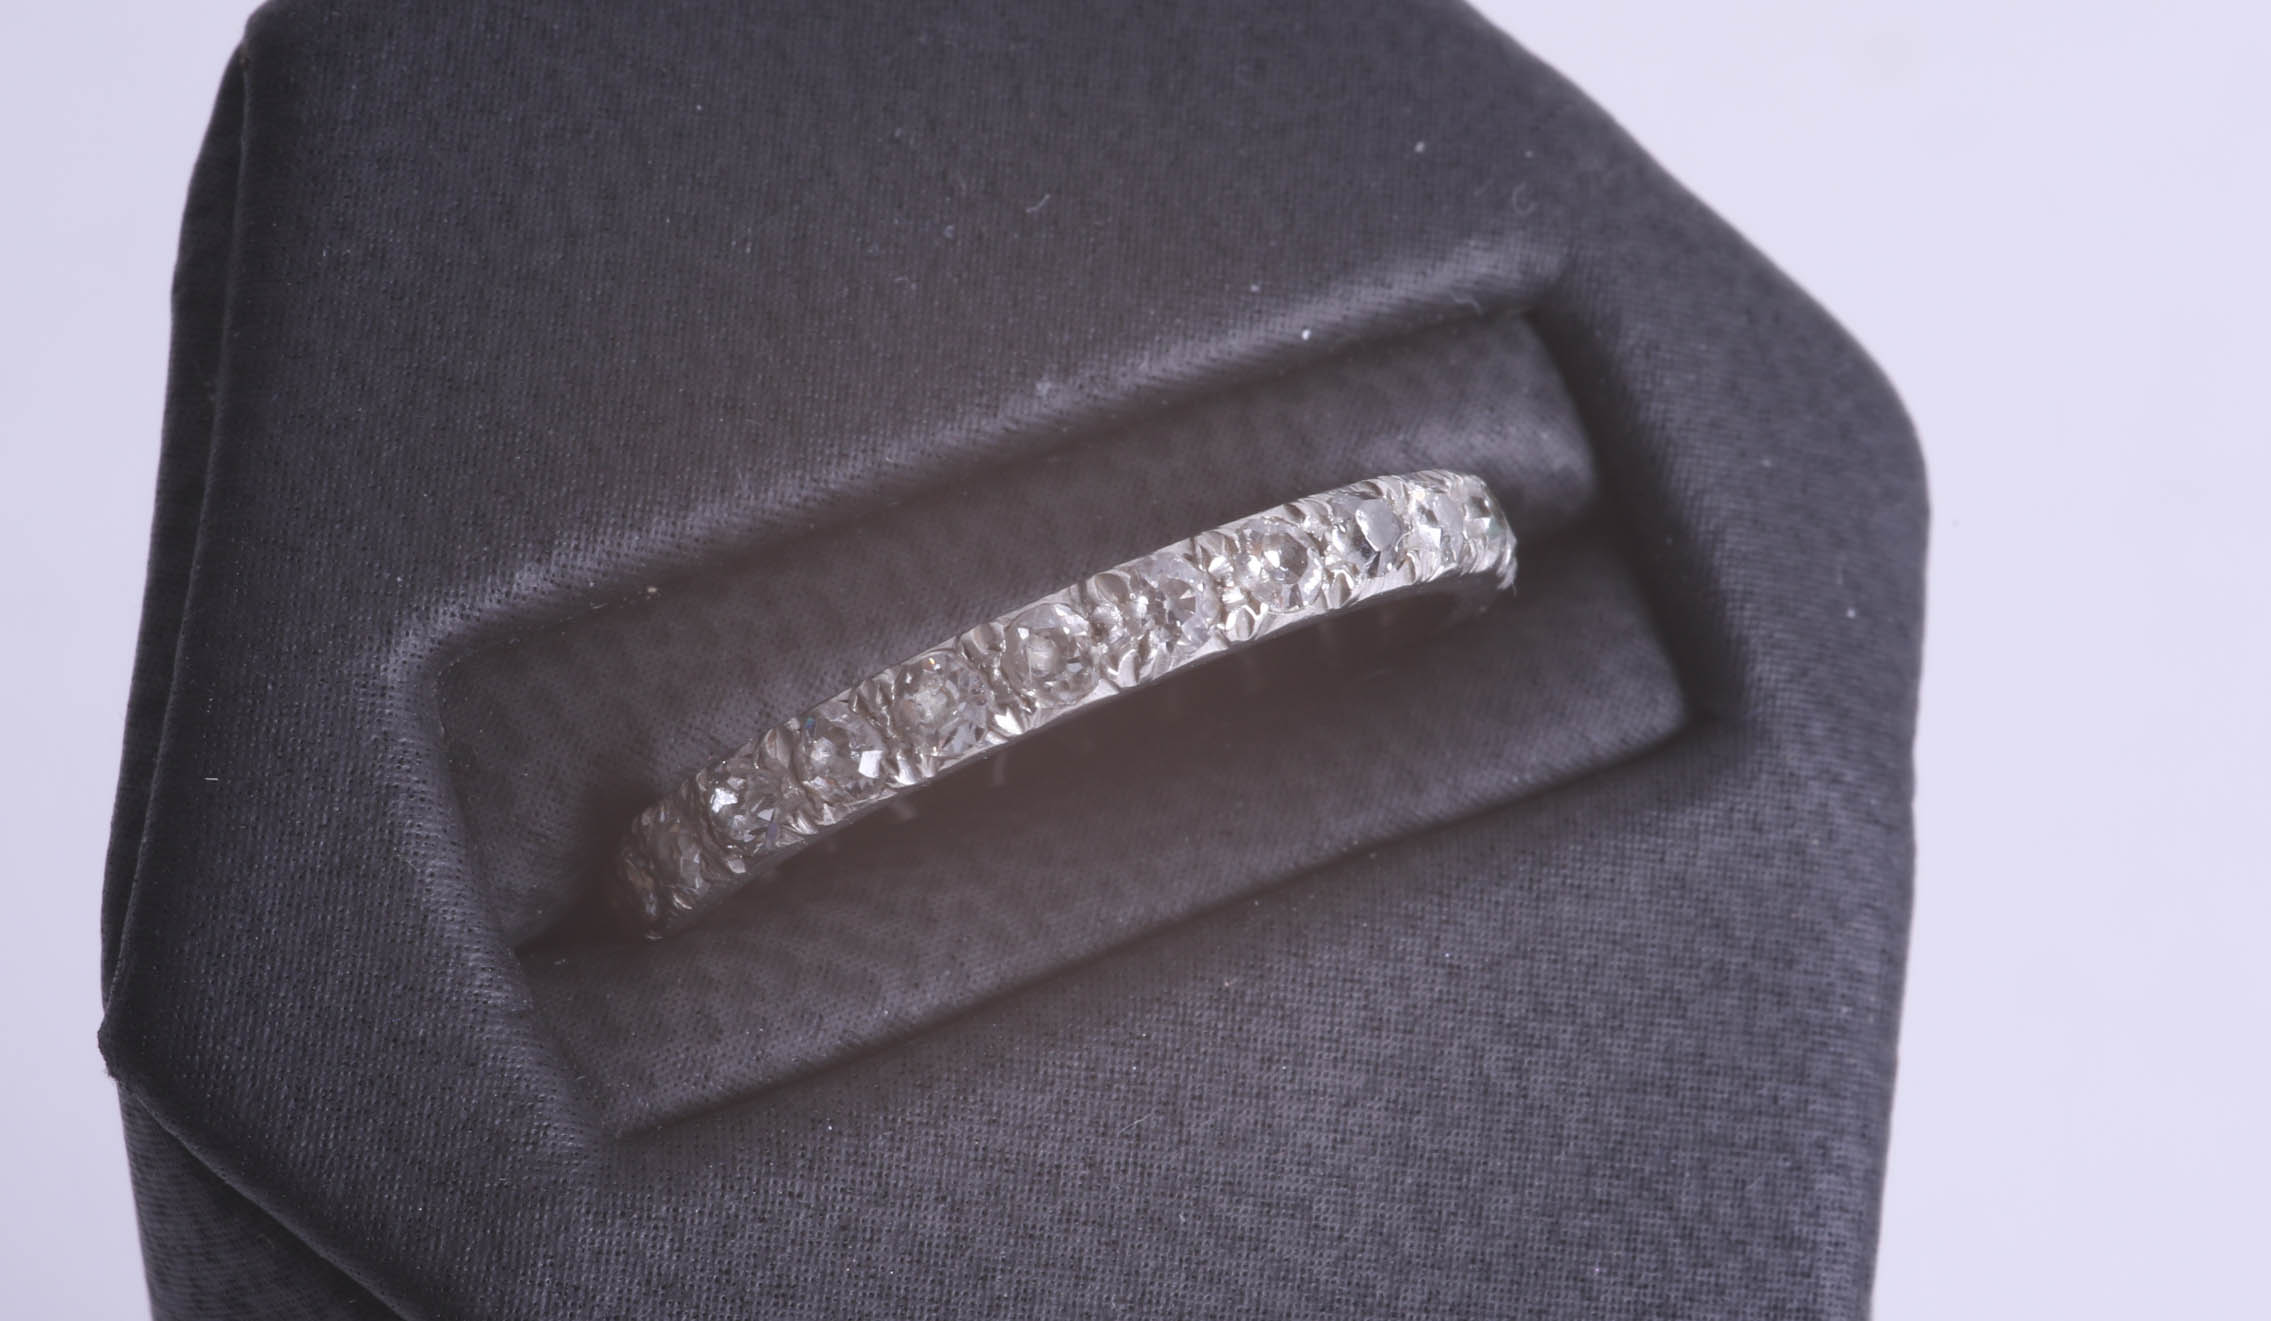 Lot 063 - A full band eternity ring set in white metal (lacks two stones), size Q.